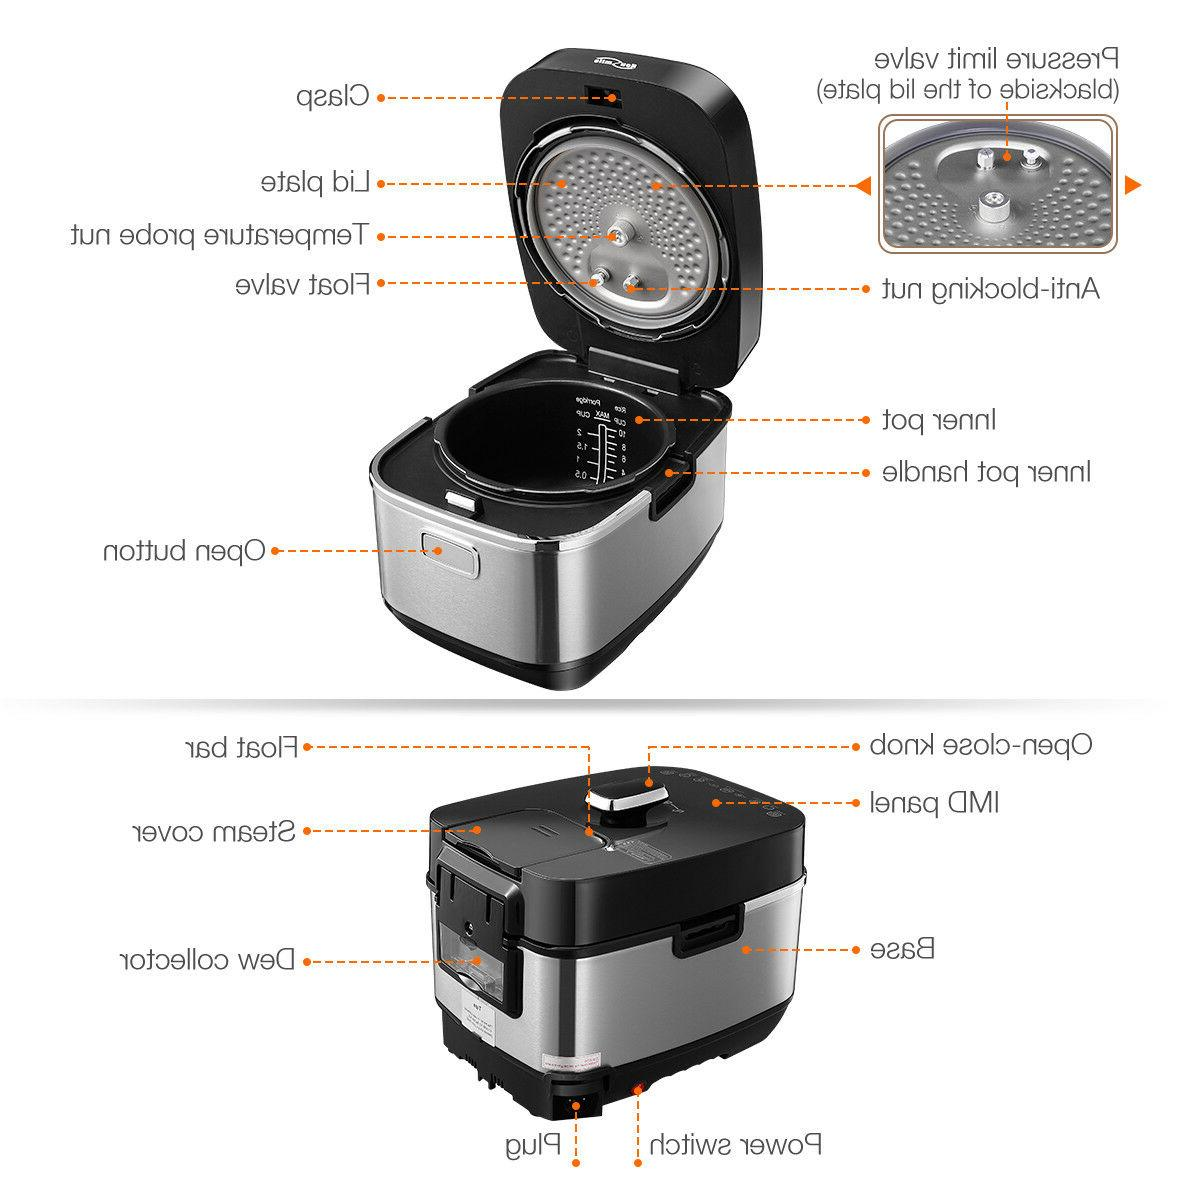 Housmile 1000W IH Cooker Induction